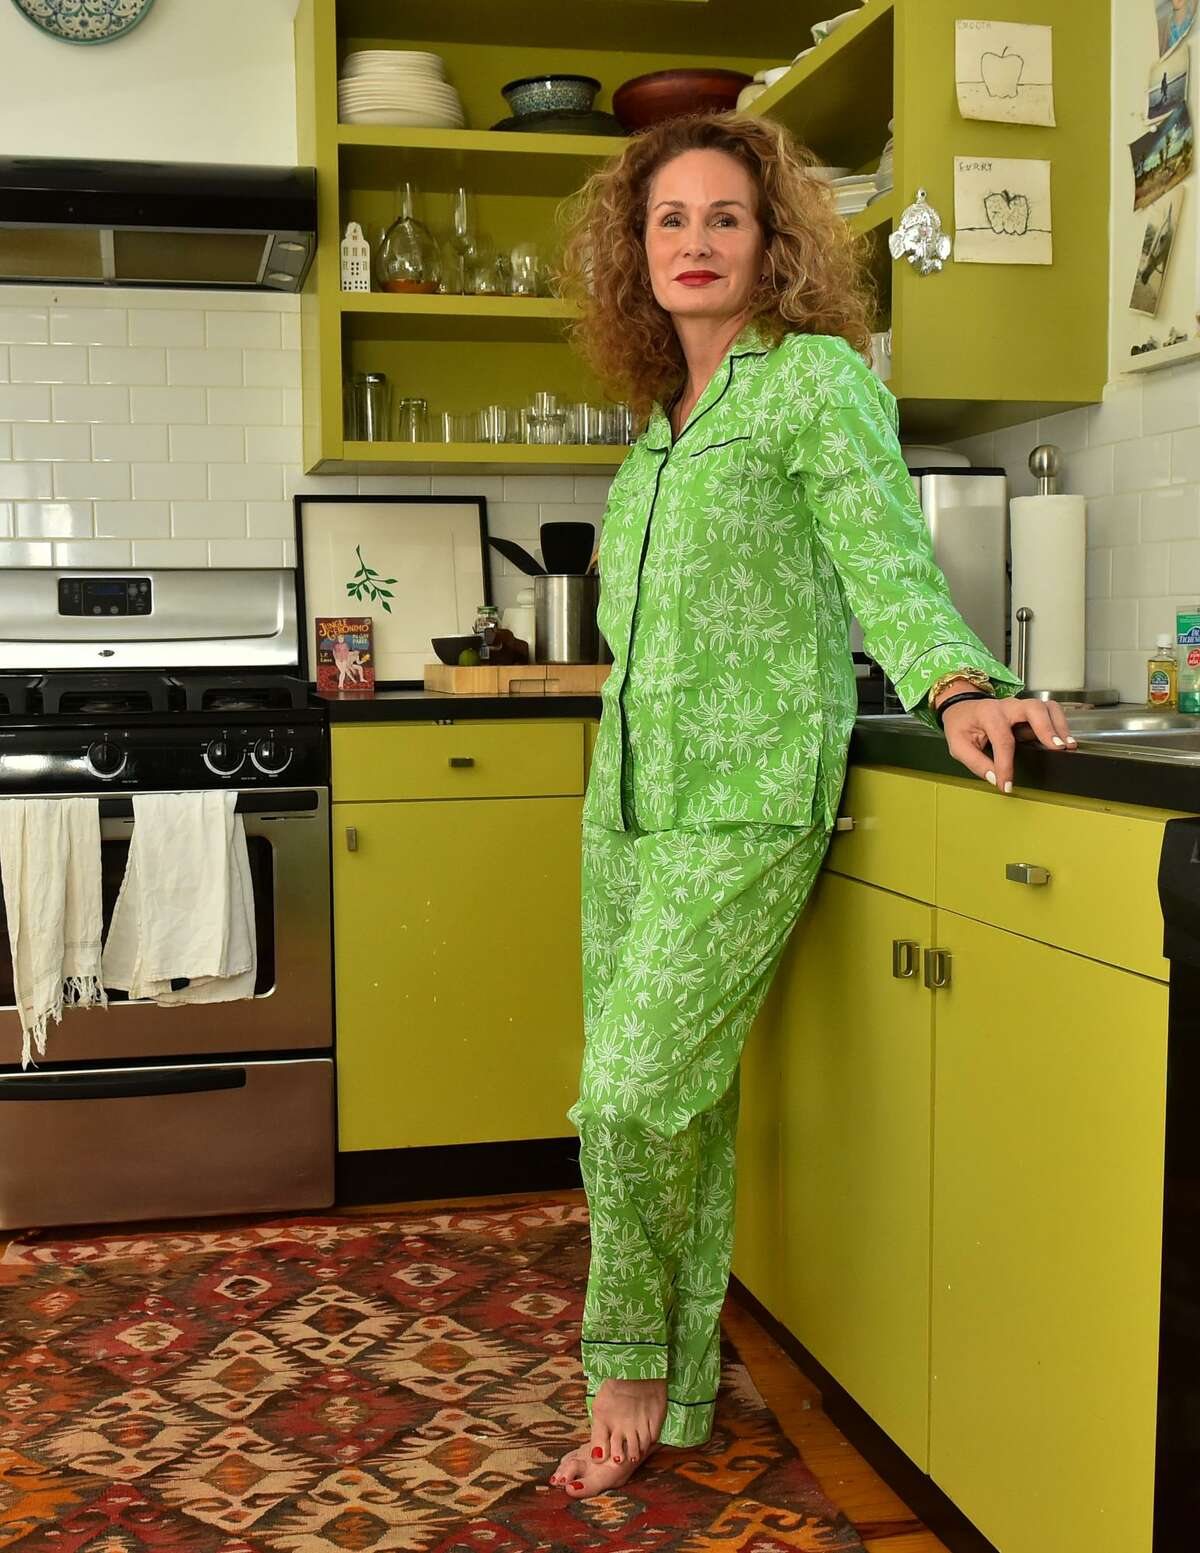 Sonya Dawson is shown in her King William-area kitchen in green pot-patterned pajamas.